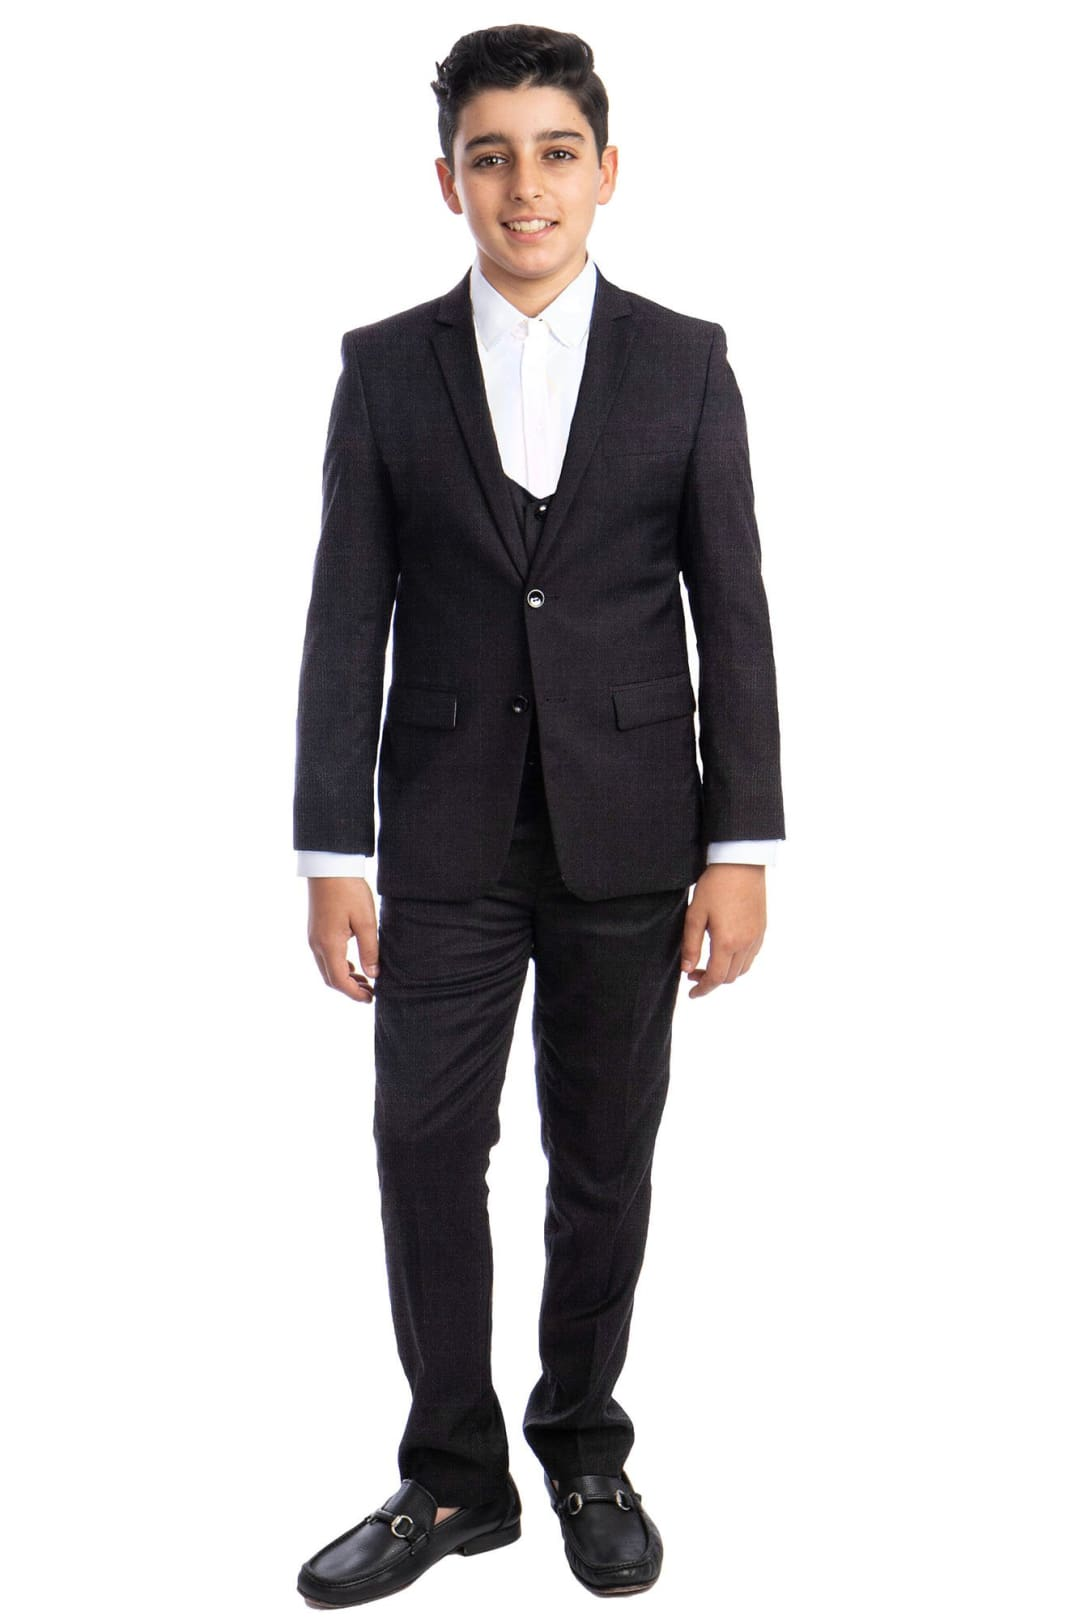 Perry Ellis Boys Slim Fit Suit - DARK GREY / 2 - Mens Suits